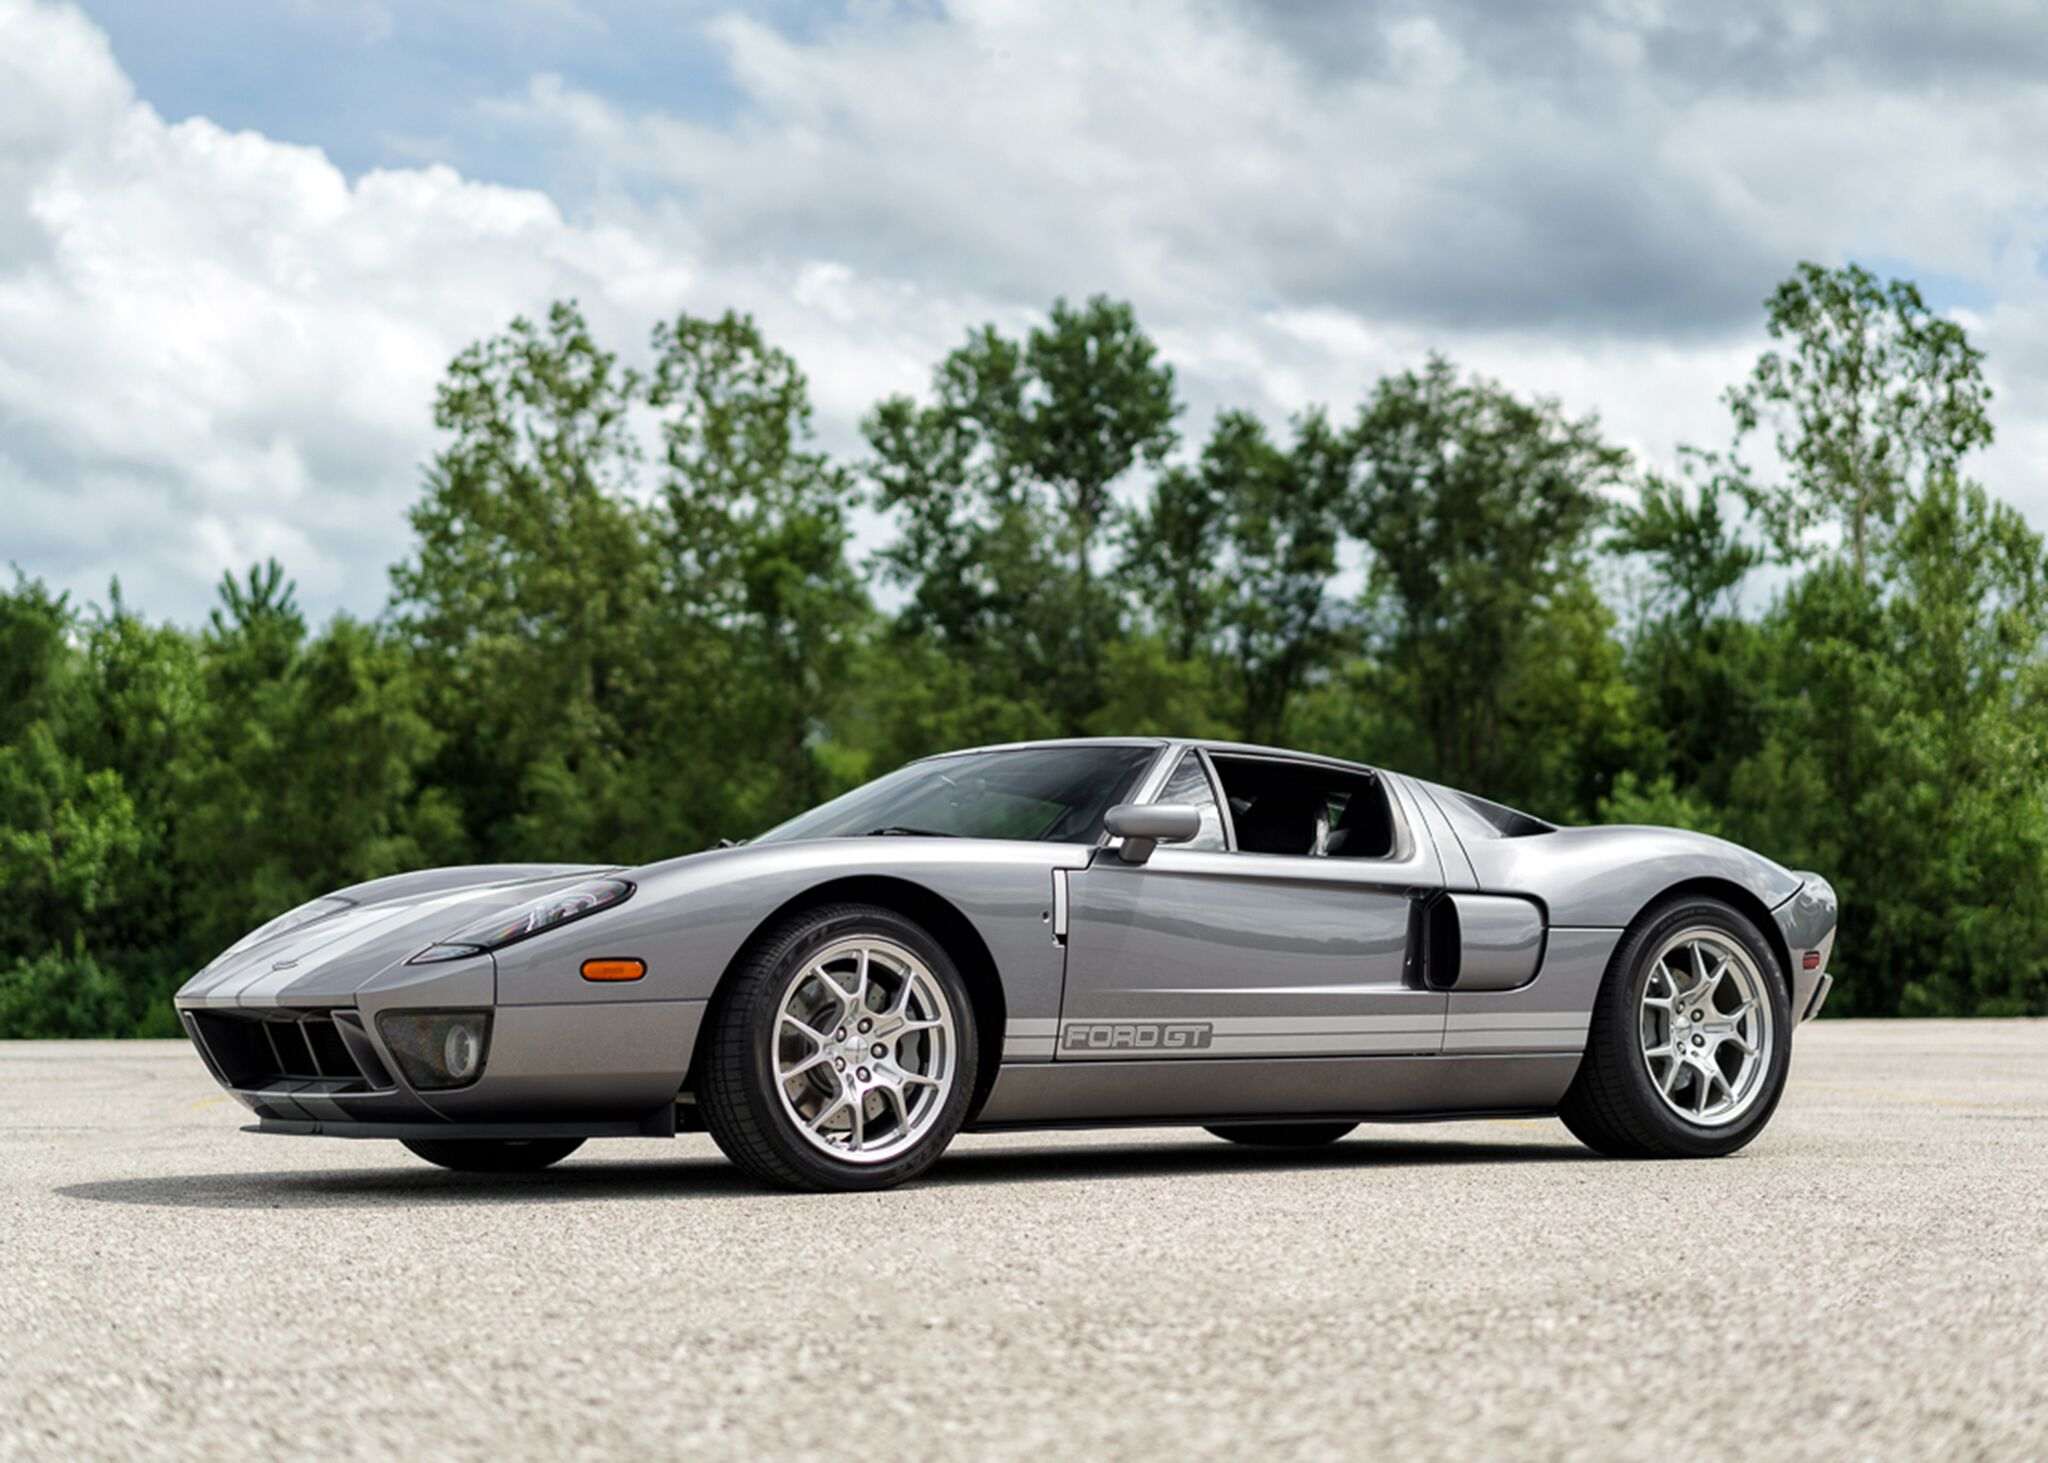 Ford GT tops Leake's hometown auction